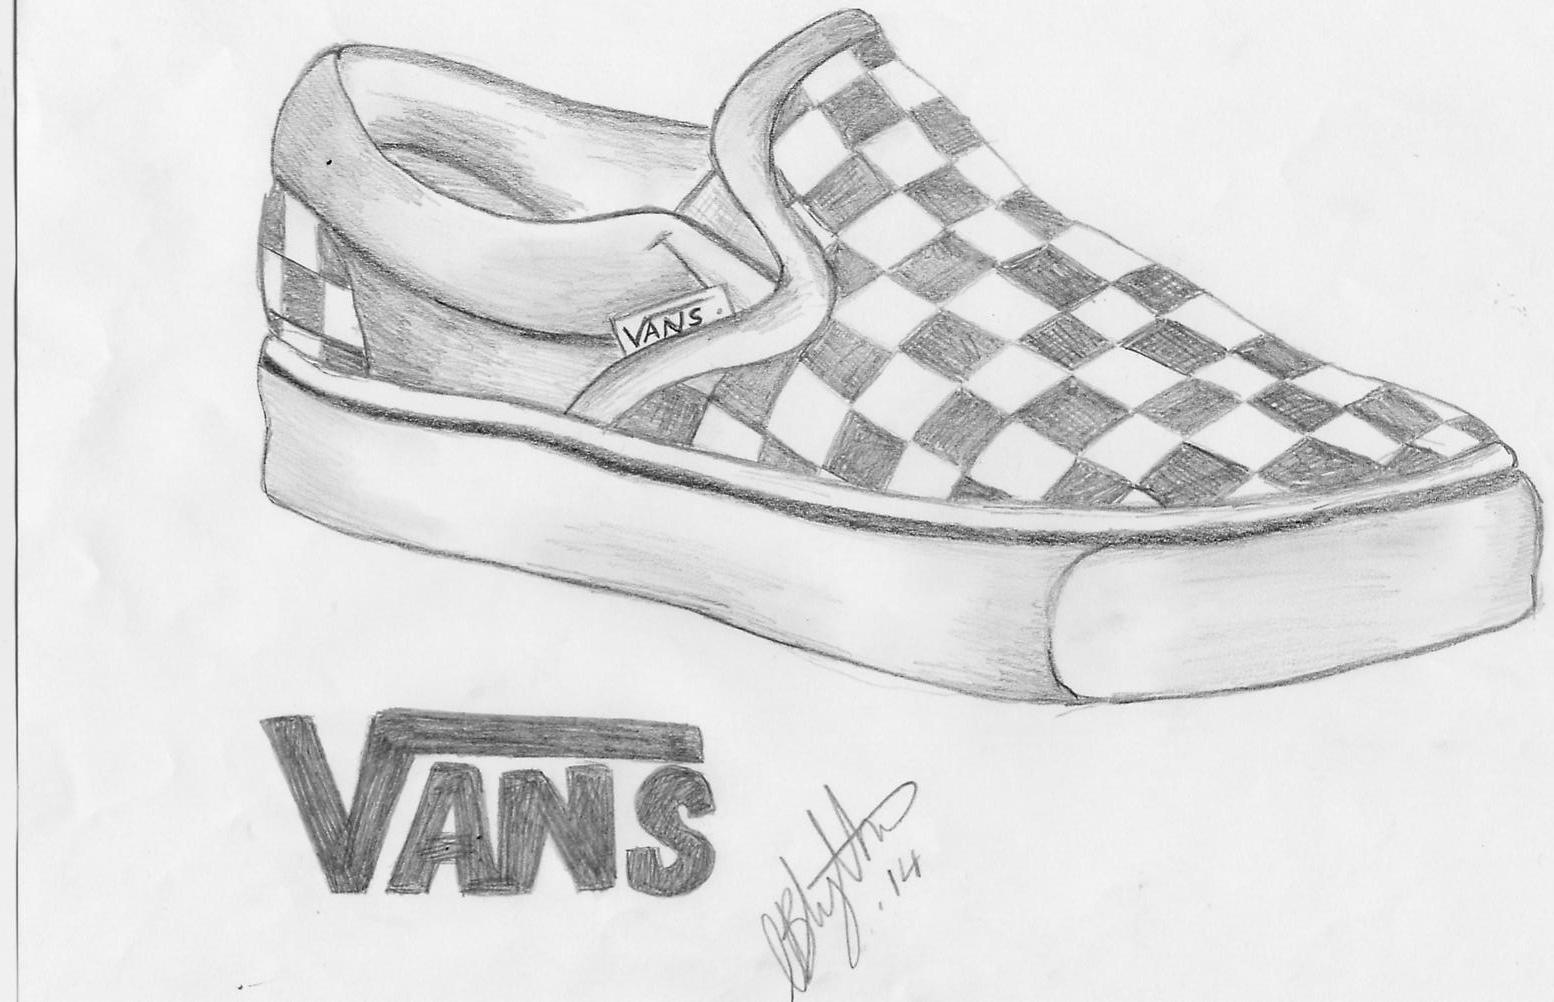 van drawing pencil vans by blackisthecolour on deviantart drawing van